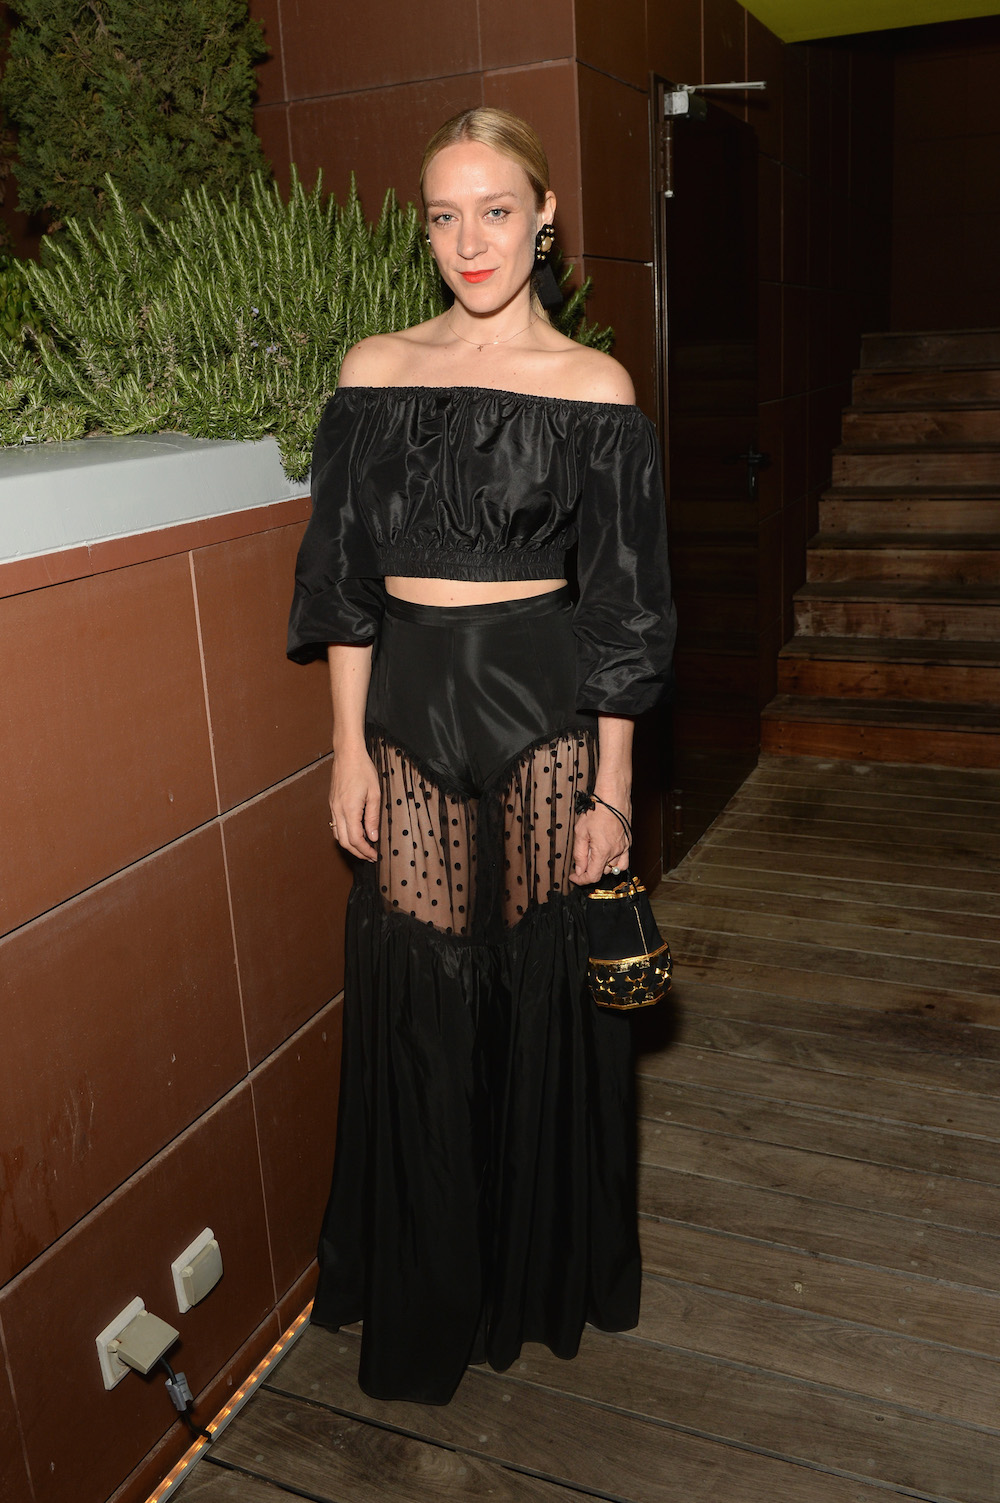 Chloe Sevignys coolgirl style hands down ruled the Cannes red carpet